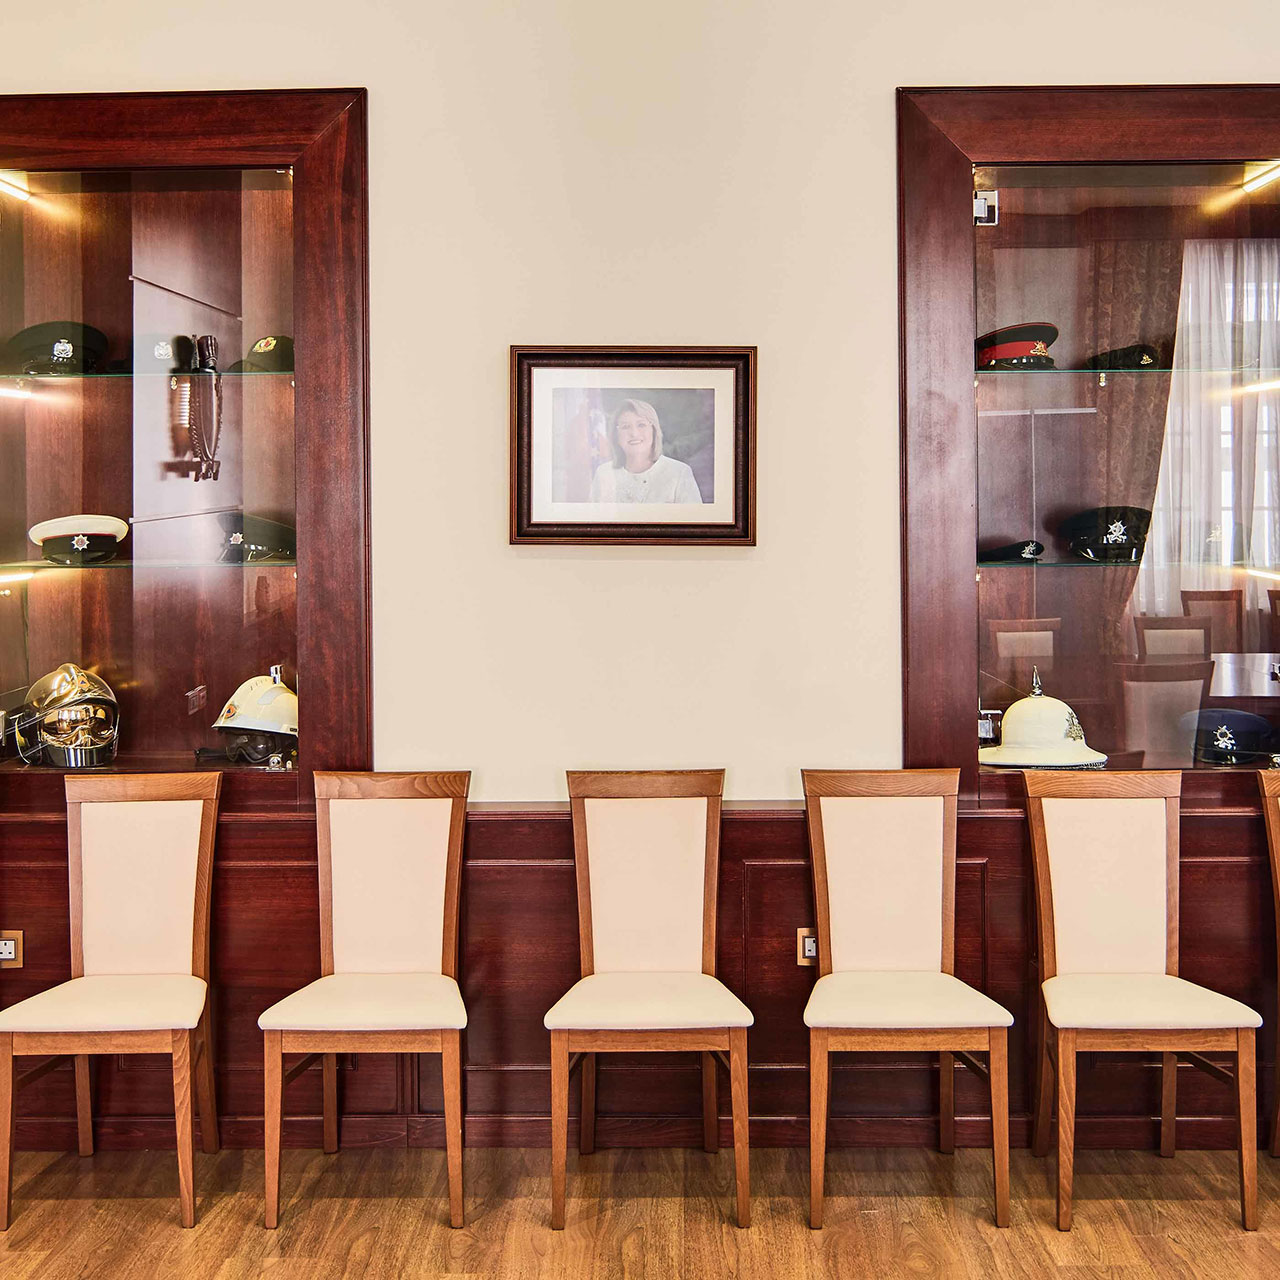 Upgrading Boardroom at Ministry of Home Affairs & National Security